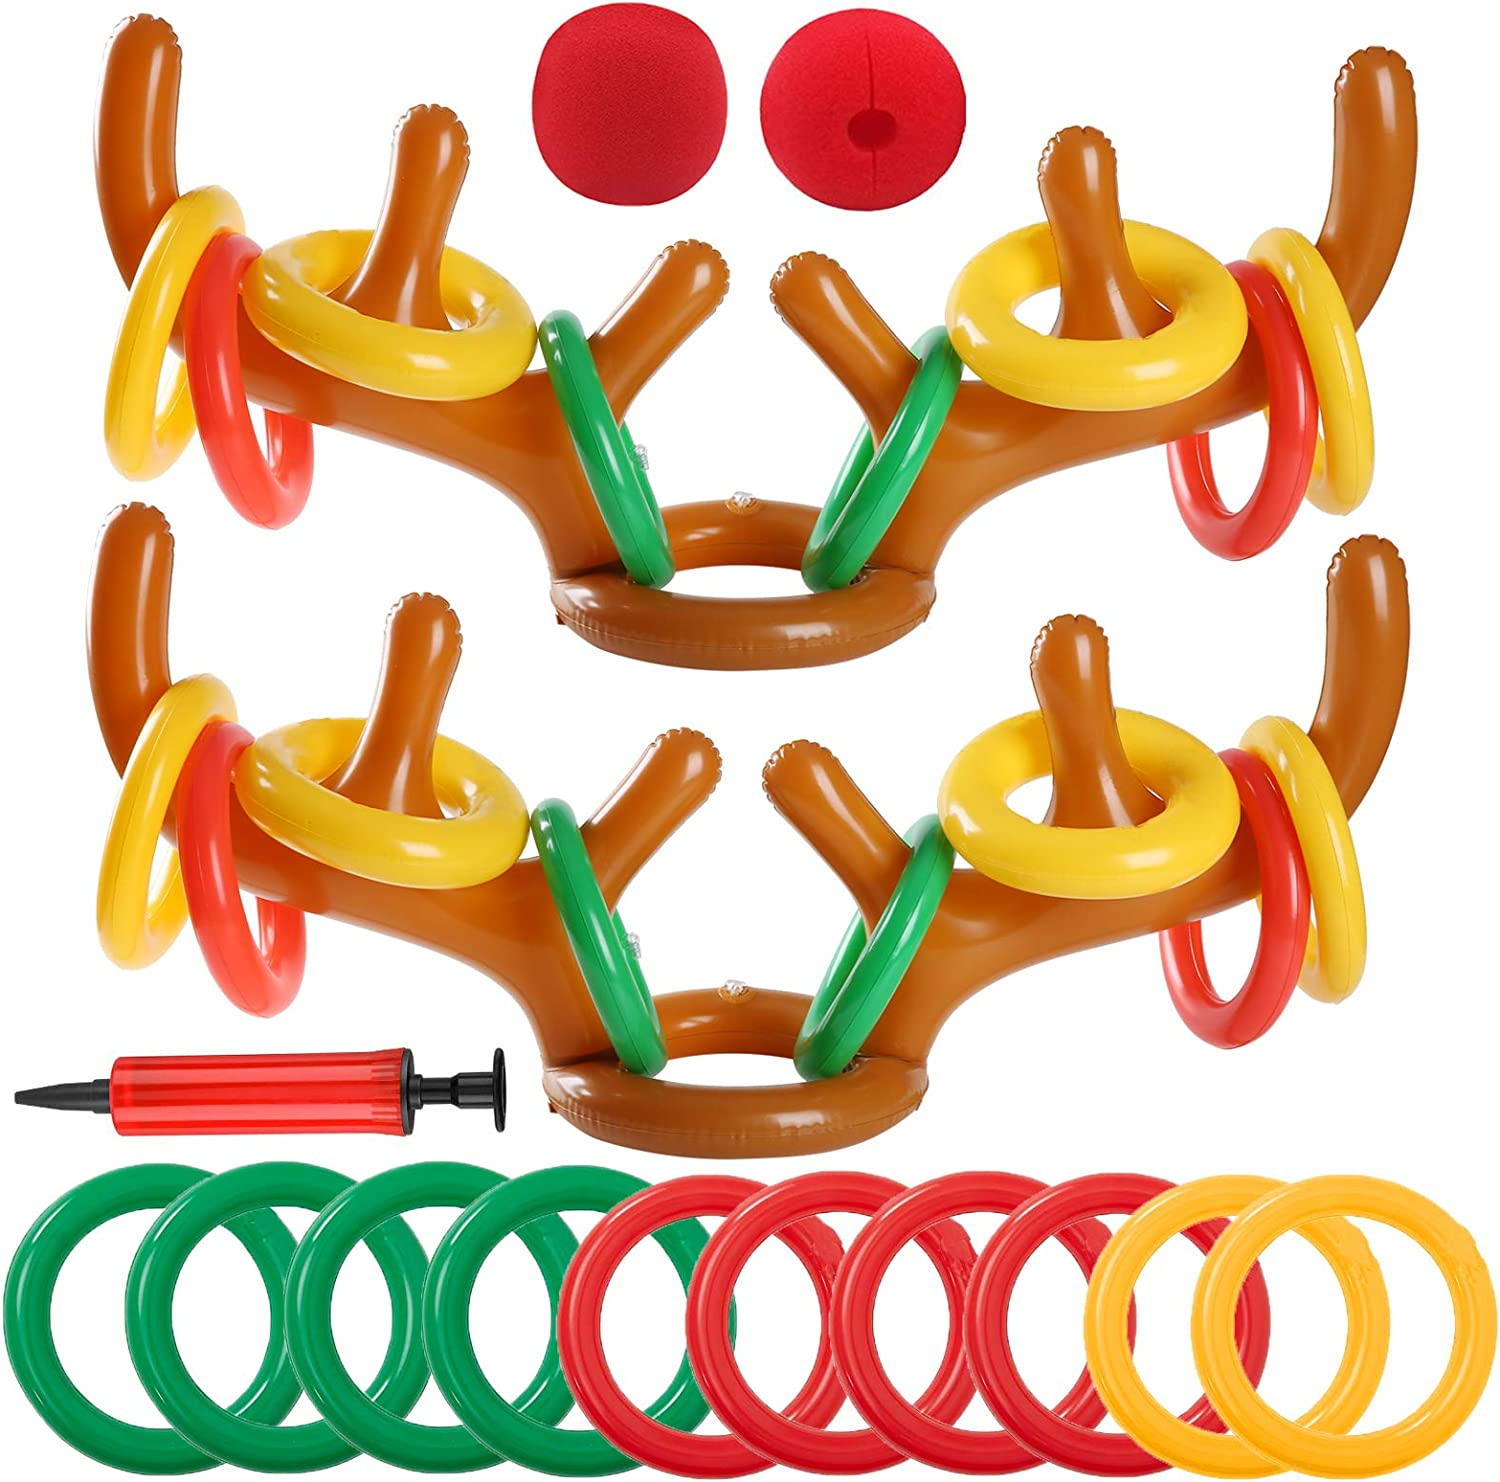 Uniqhia Christmas Party Games Inflatable Ring Cash special Max 43% OFF price T Antler Reindeer